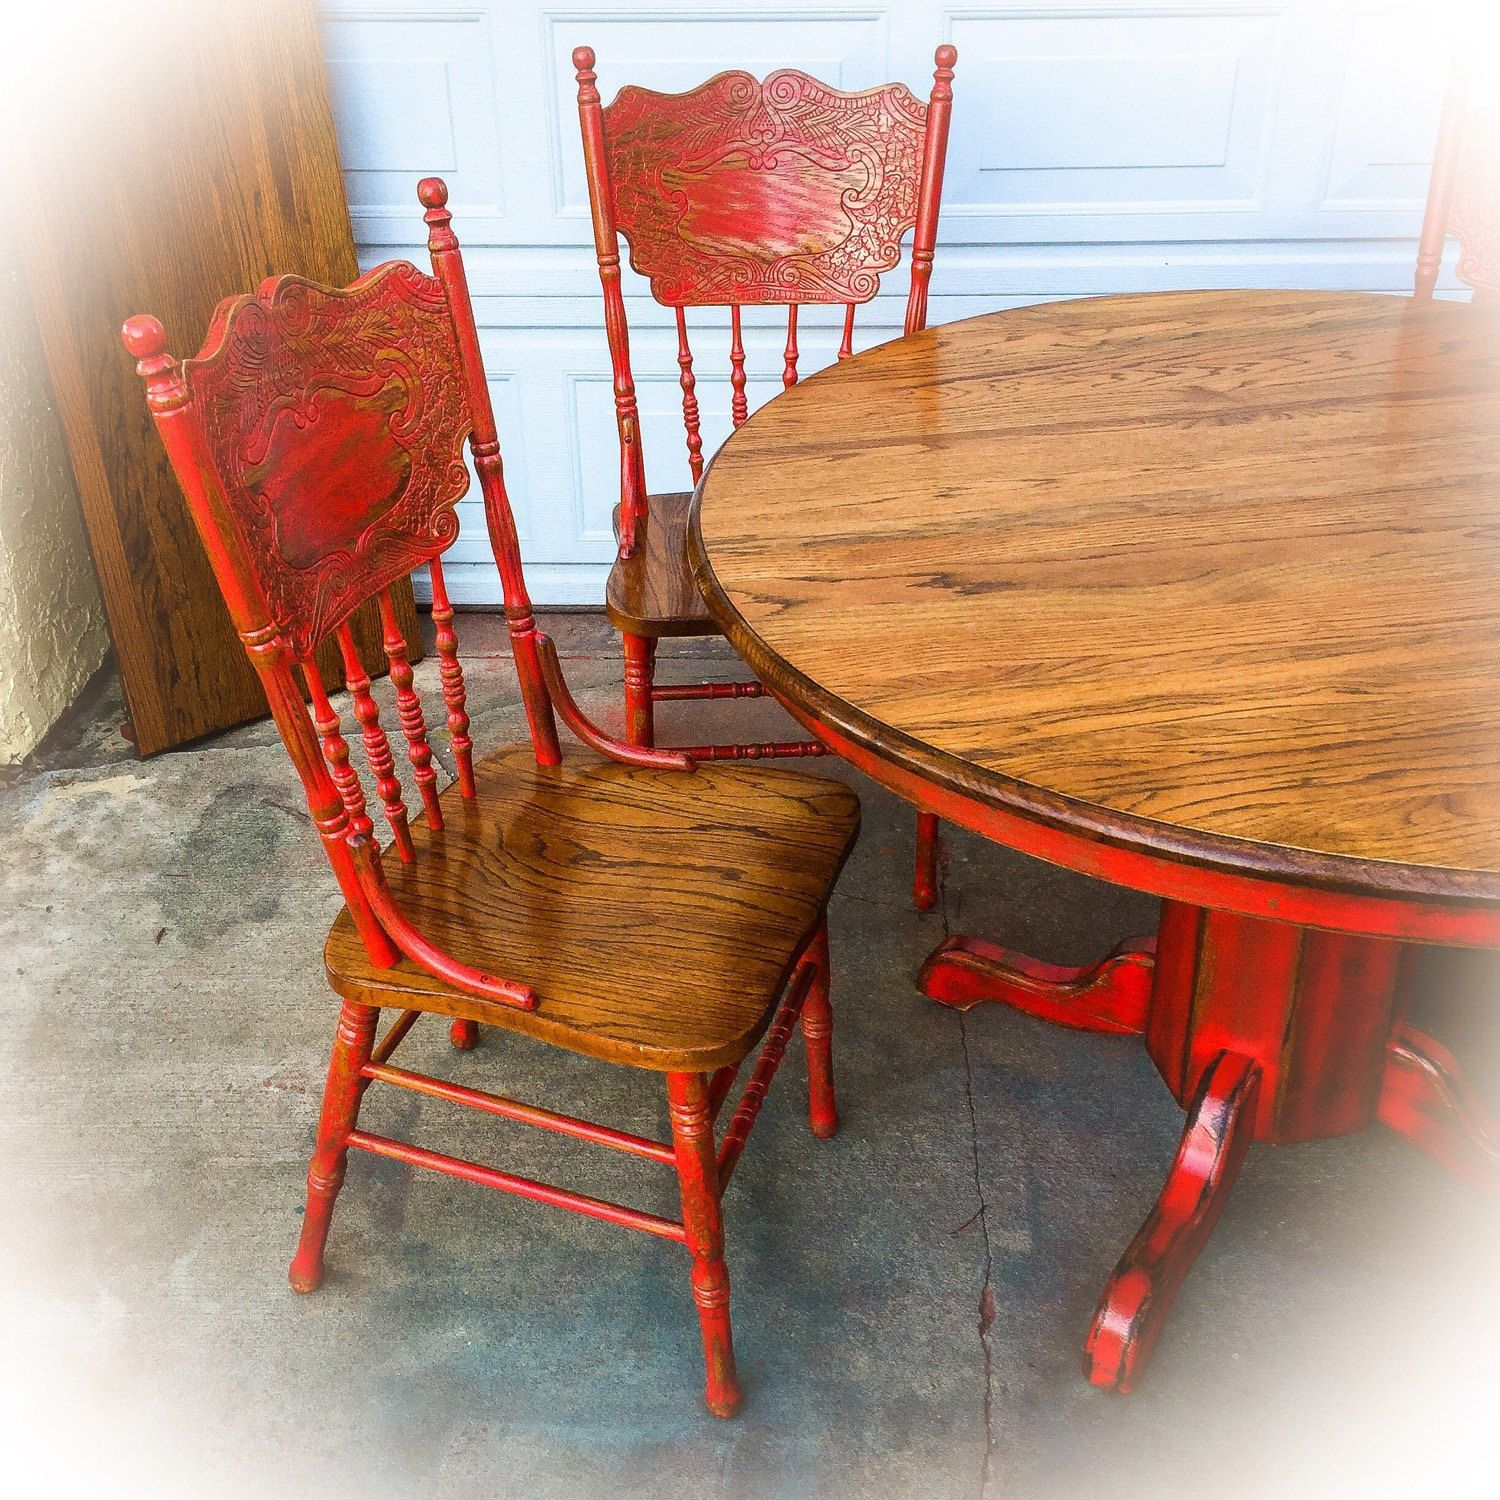 Red Kitchen Table Set Bar Stools For Islands Reincarnatedwithlove Shared A New Photo On